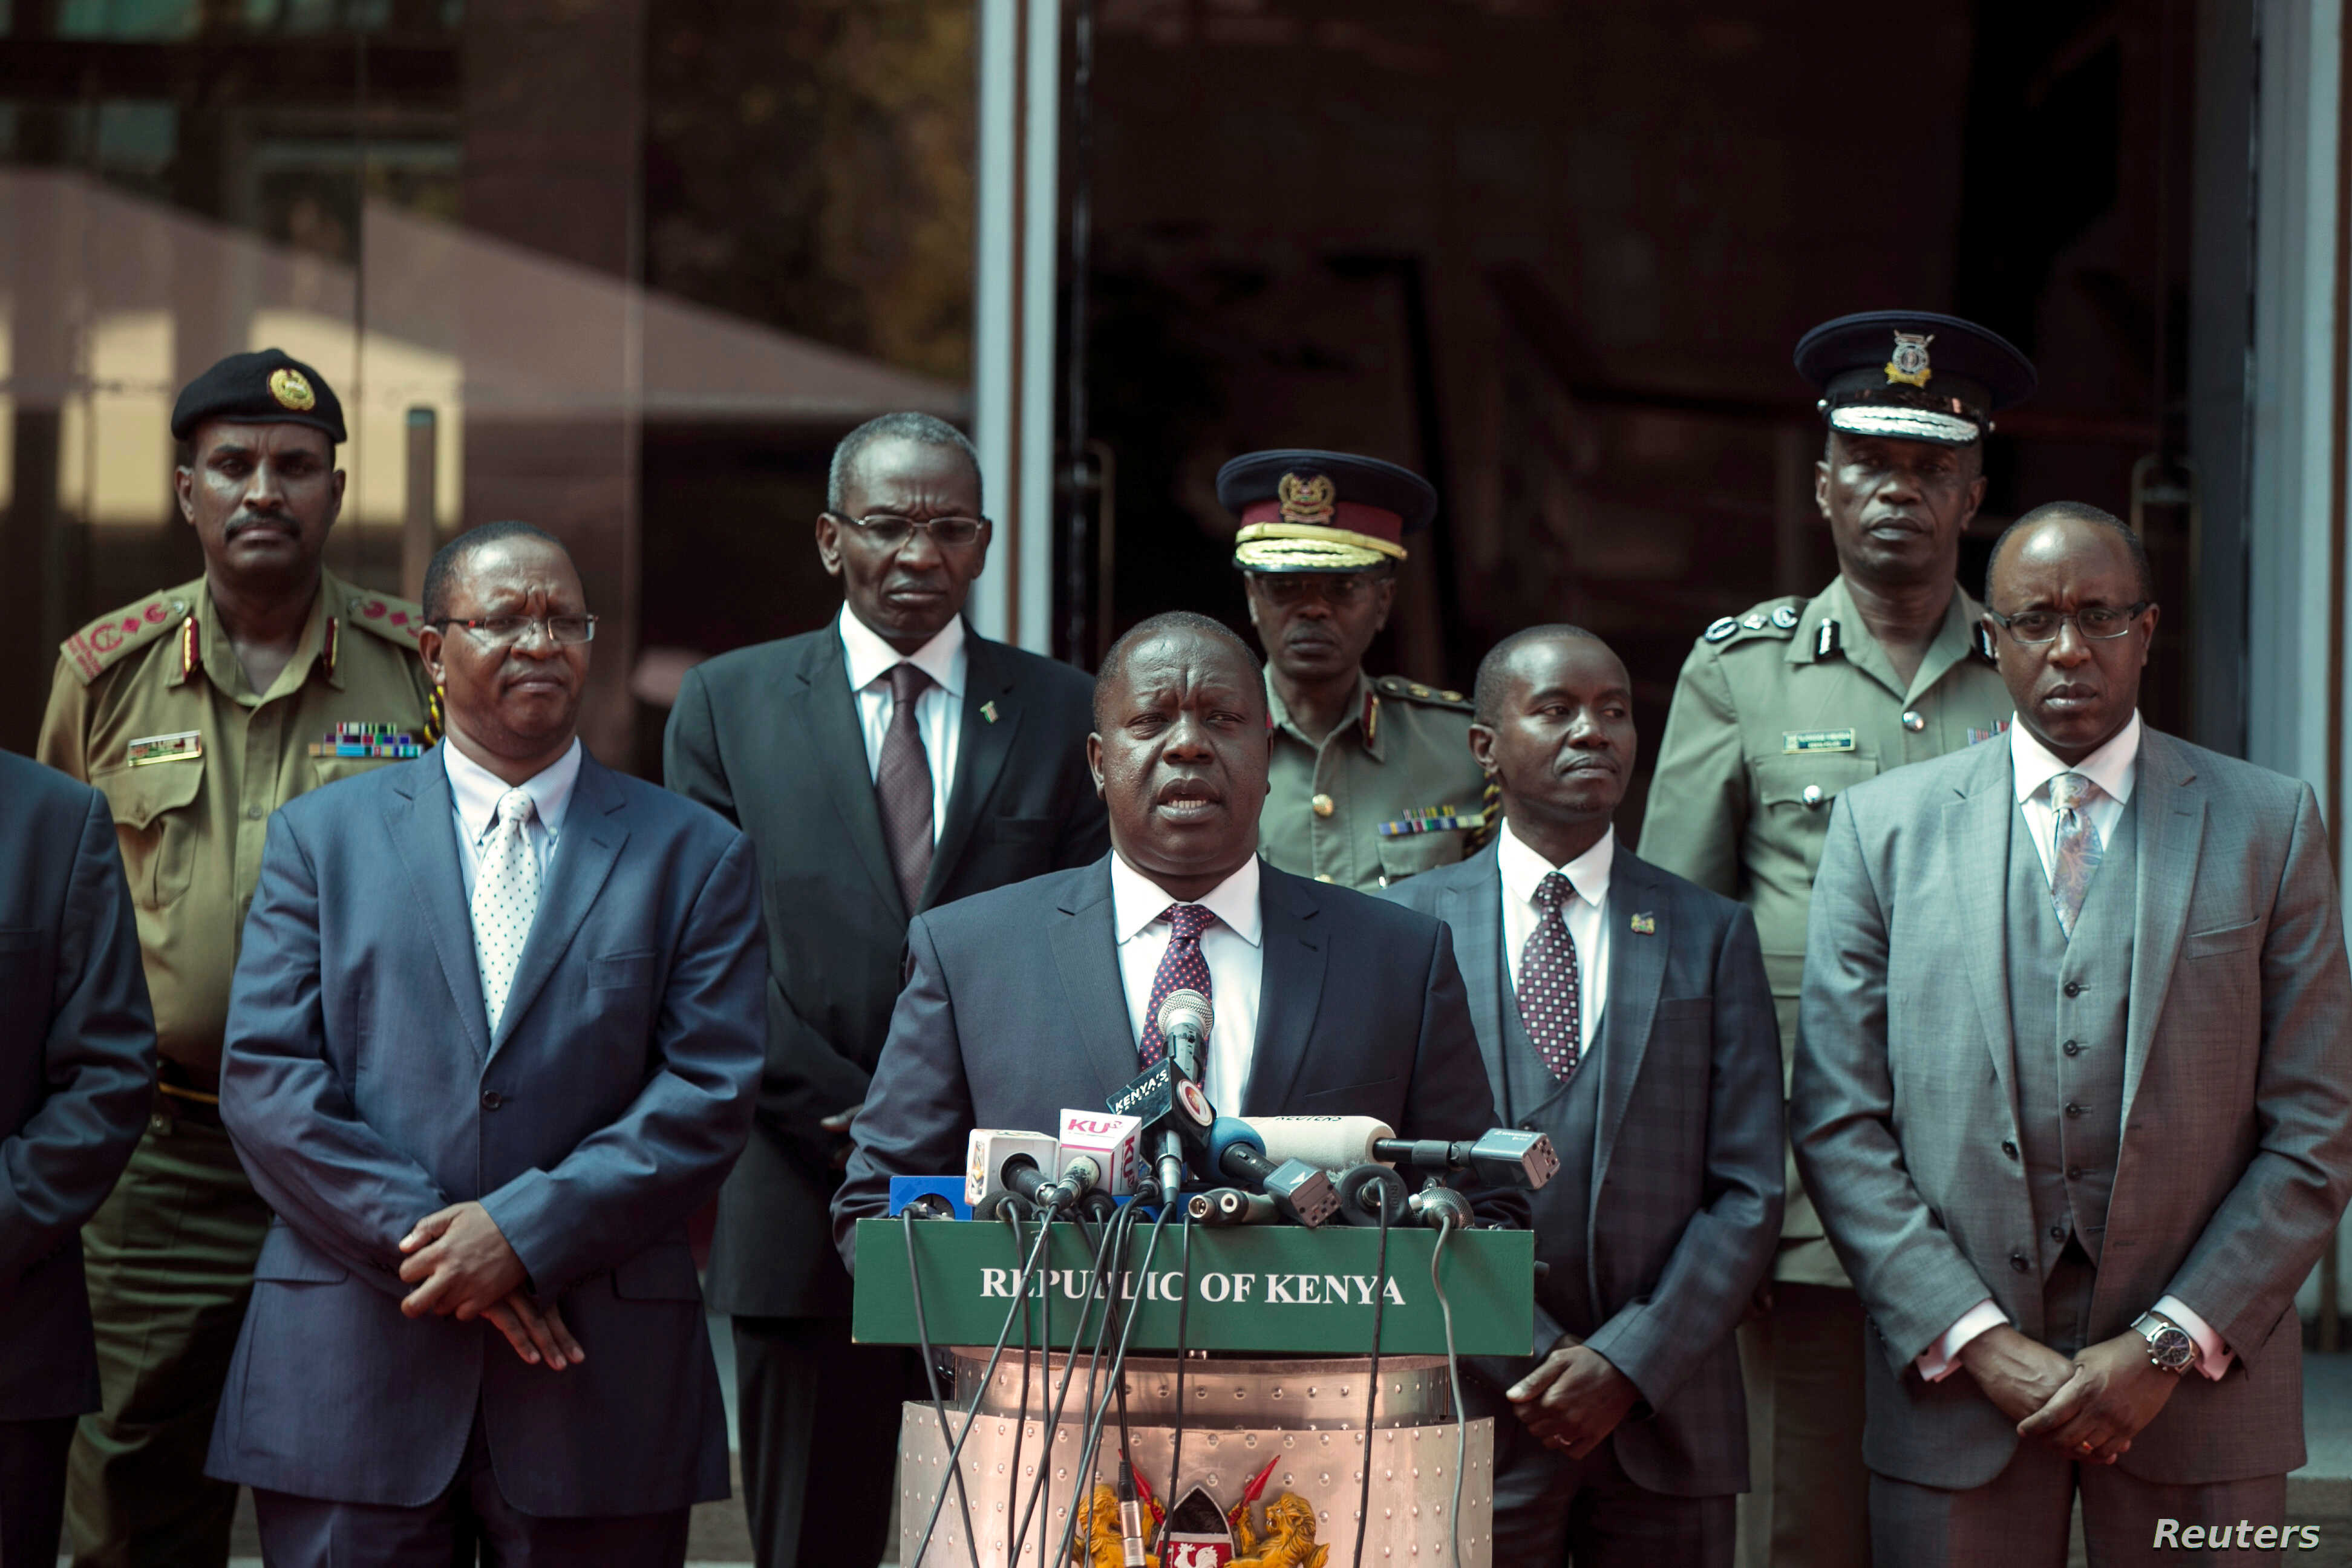 Kenyan Government Warns of Arrests Over Odinga's 'Inauguration